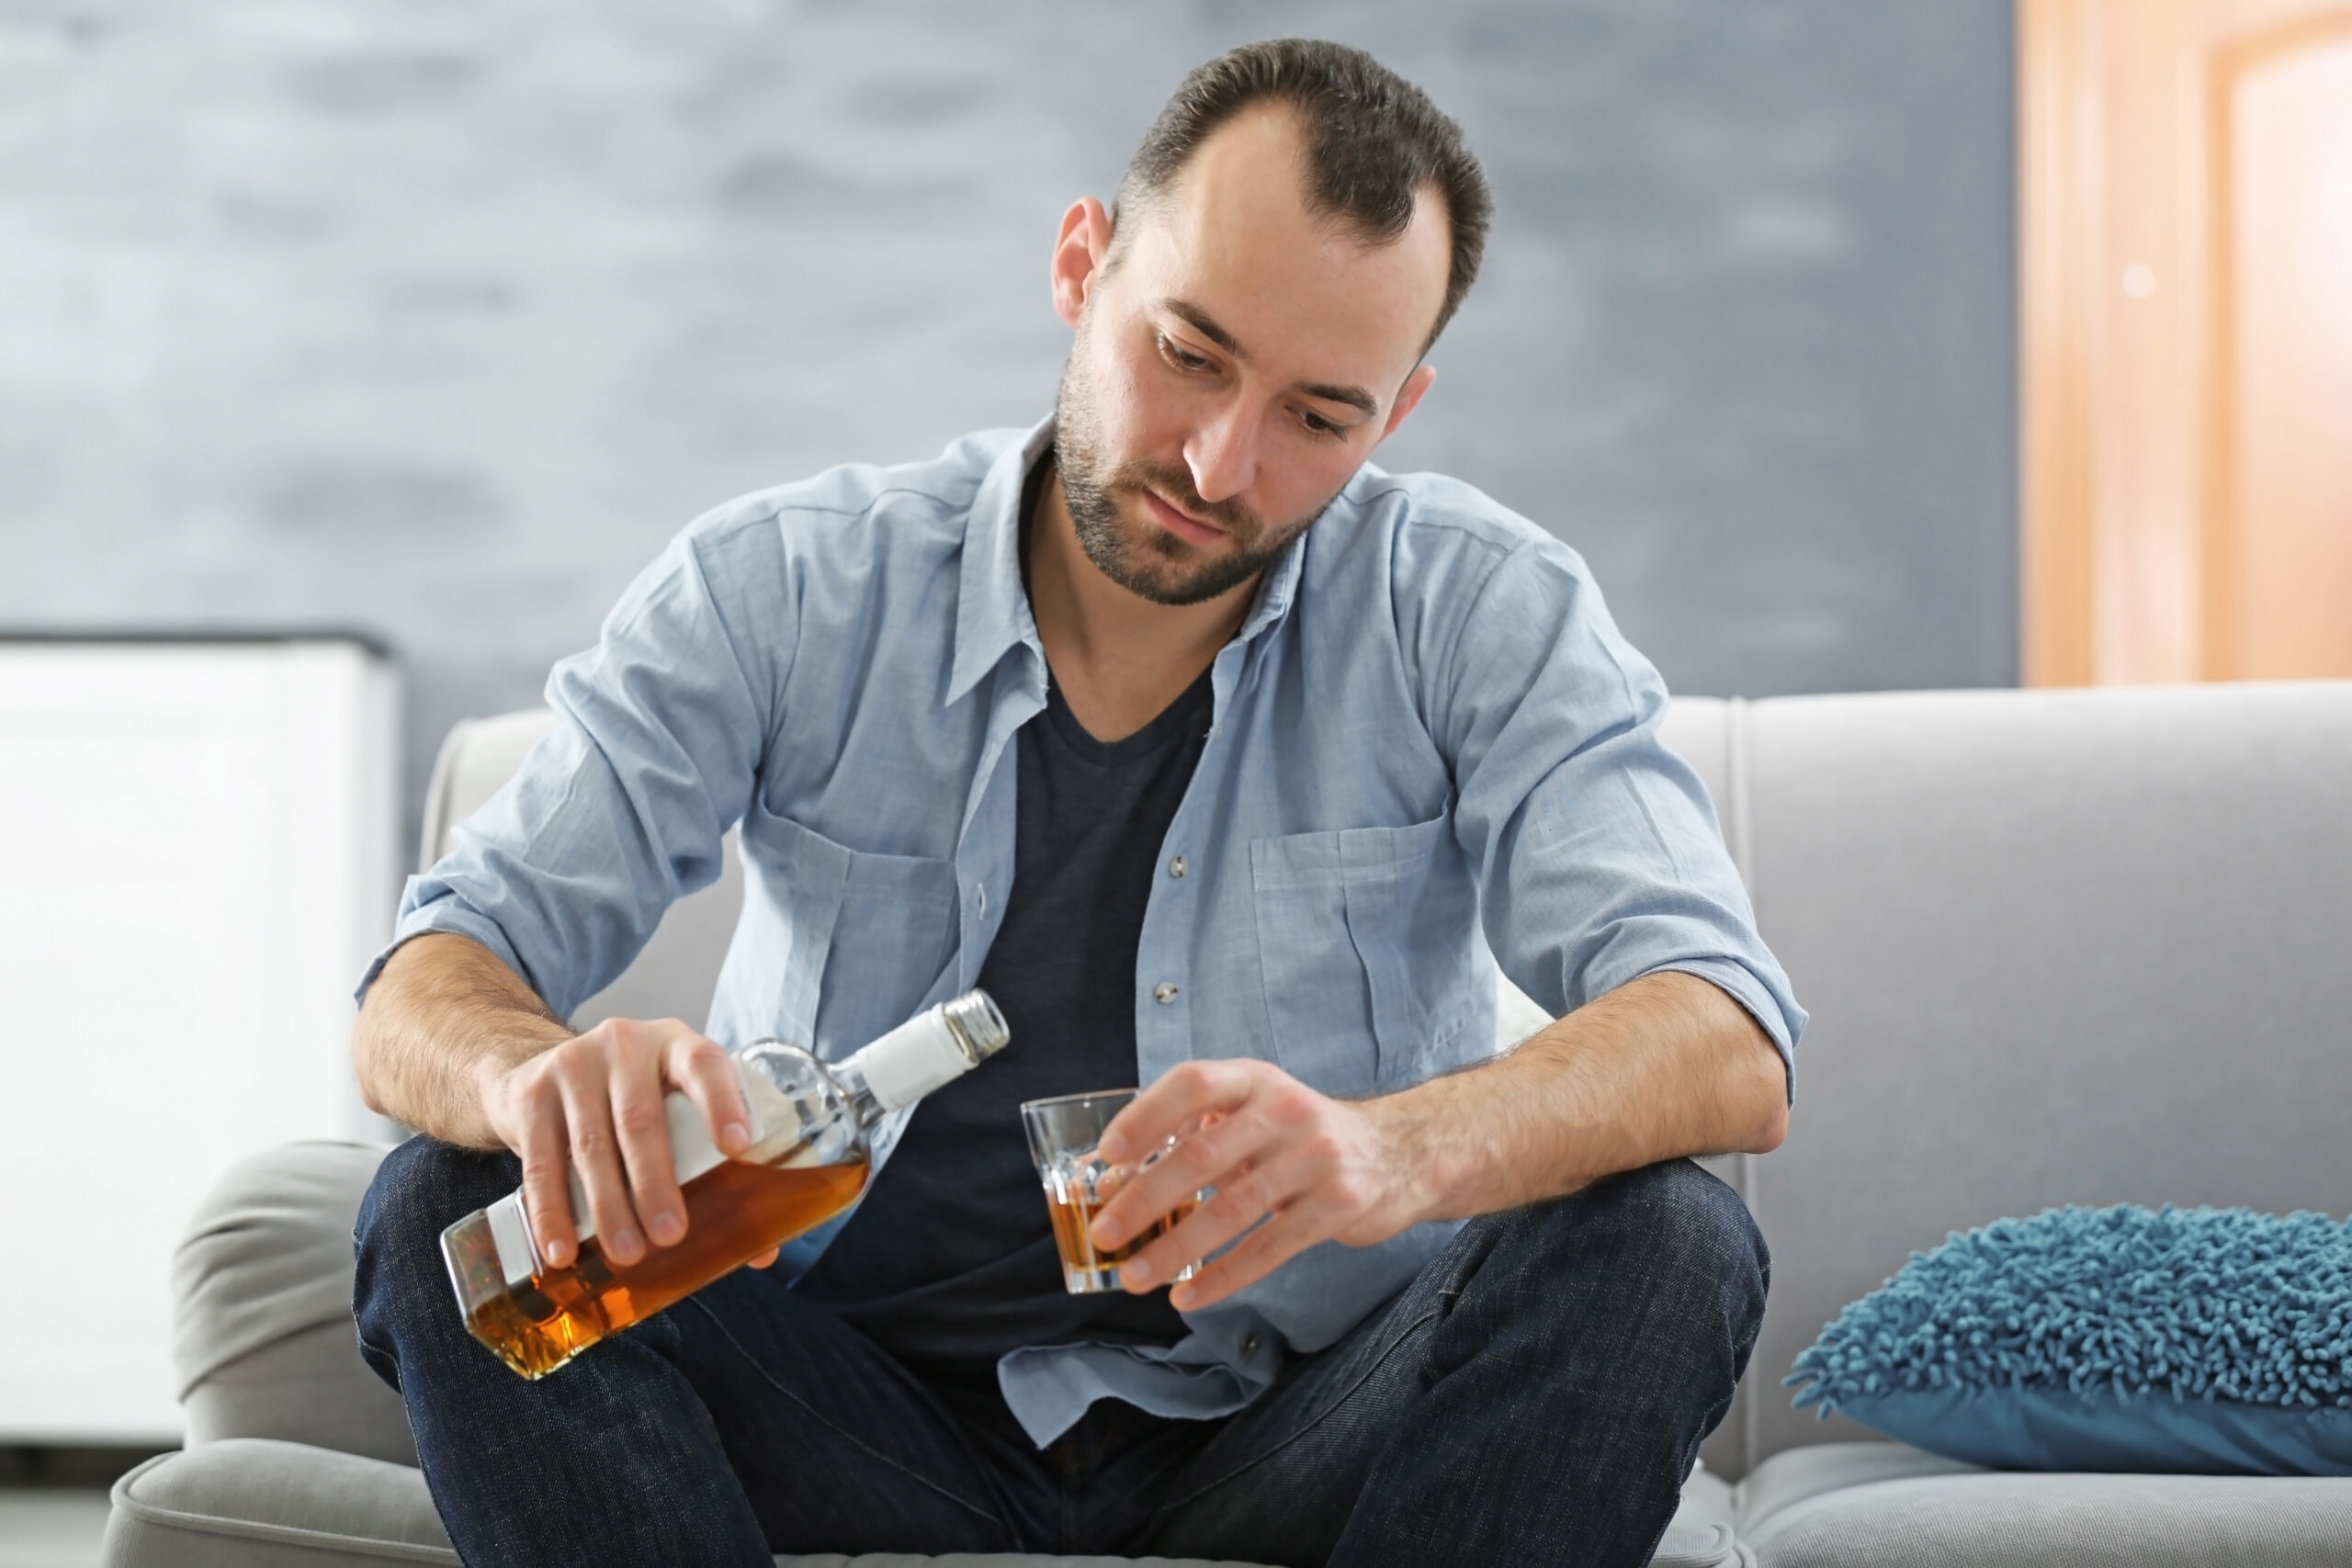 Male Struggling with Alcoholism